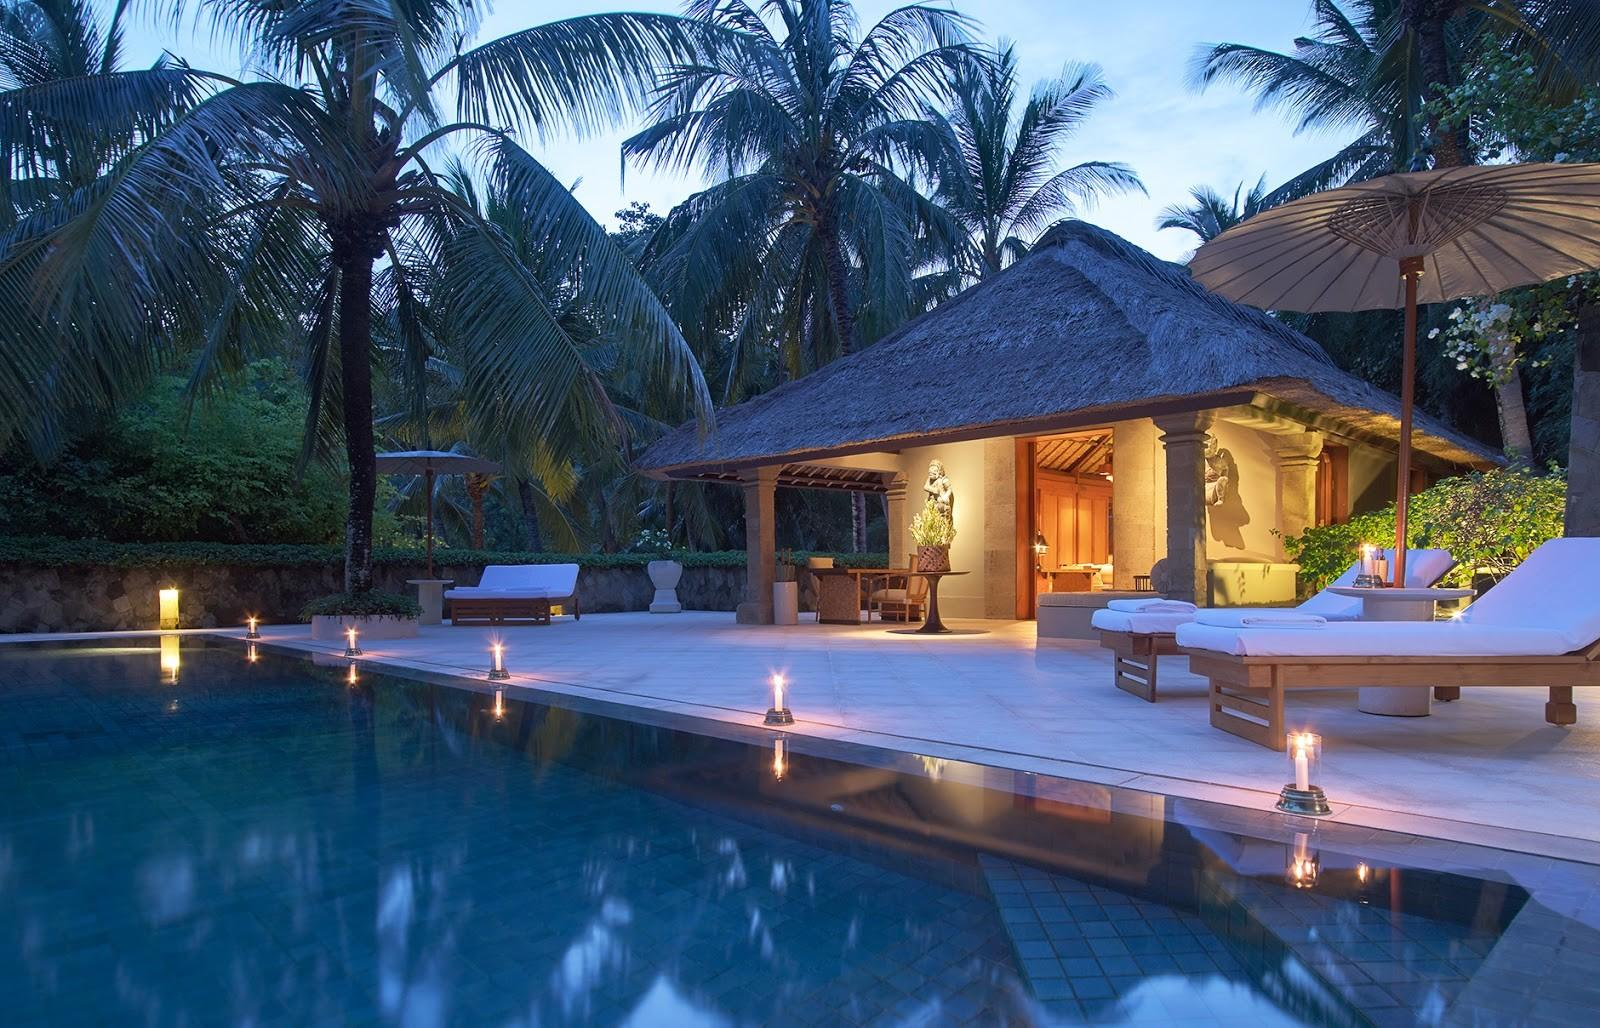 Passion Luxury Amankila Resort Bali Indonesia